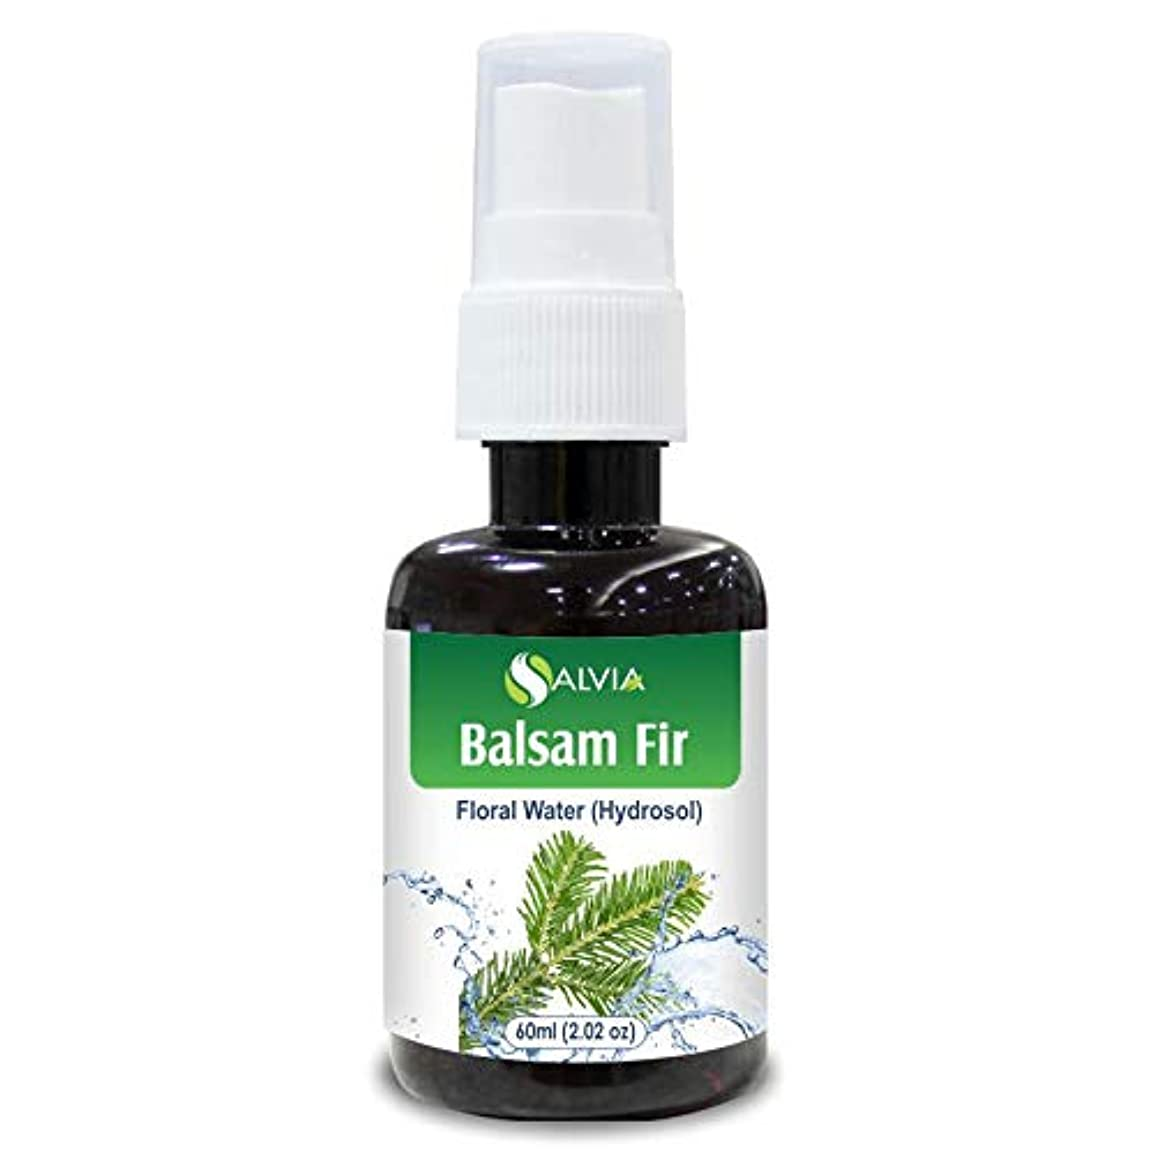 Balsam Fir Floral Water 60ml (Hydrosol) 100% Pure And Natural